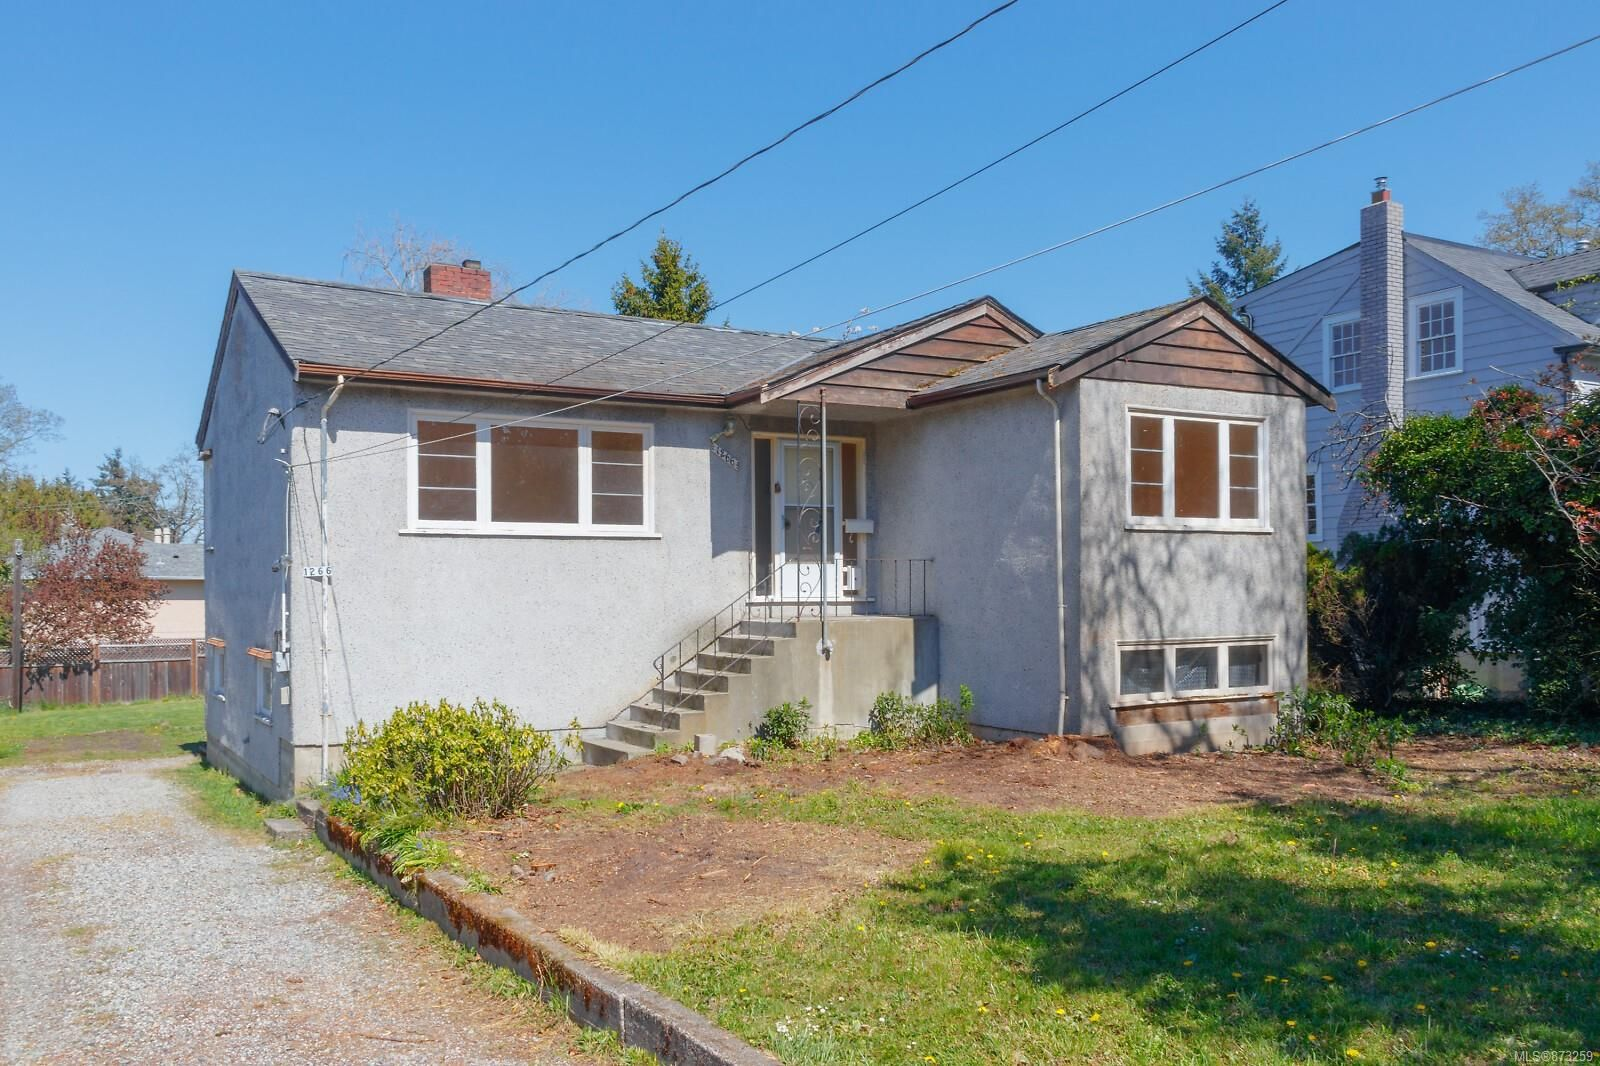 Main Photo: 1266 Reynolds Rd in : SE Maplewood House for sale (Saanich East)  : MLS®# 873259